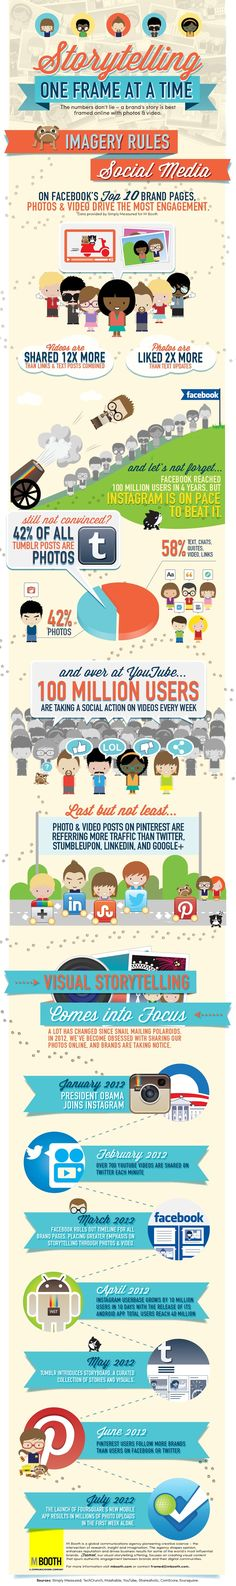 For Brand Engagement, Visuals Rule [INFOGRAPHIC]